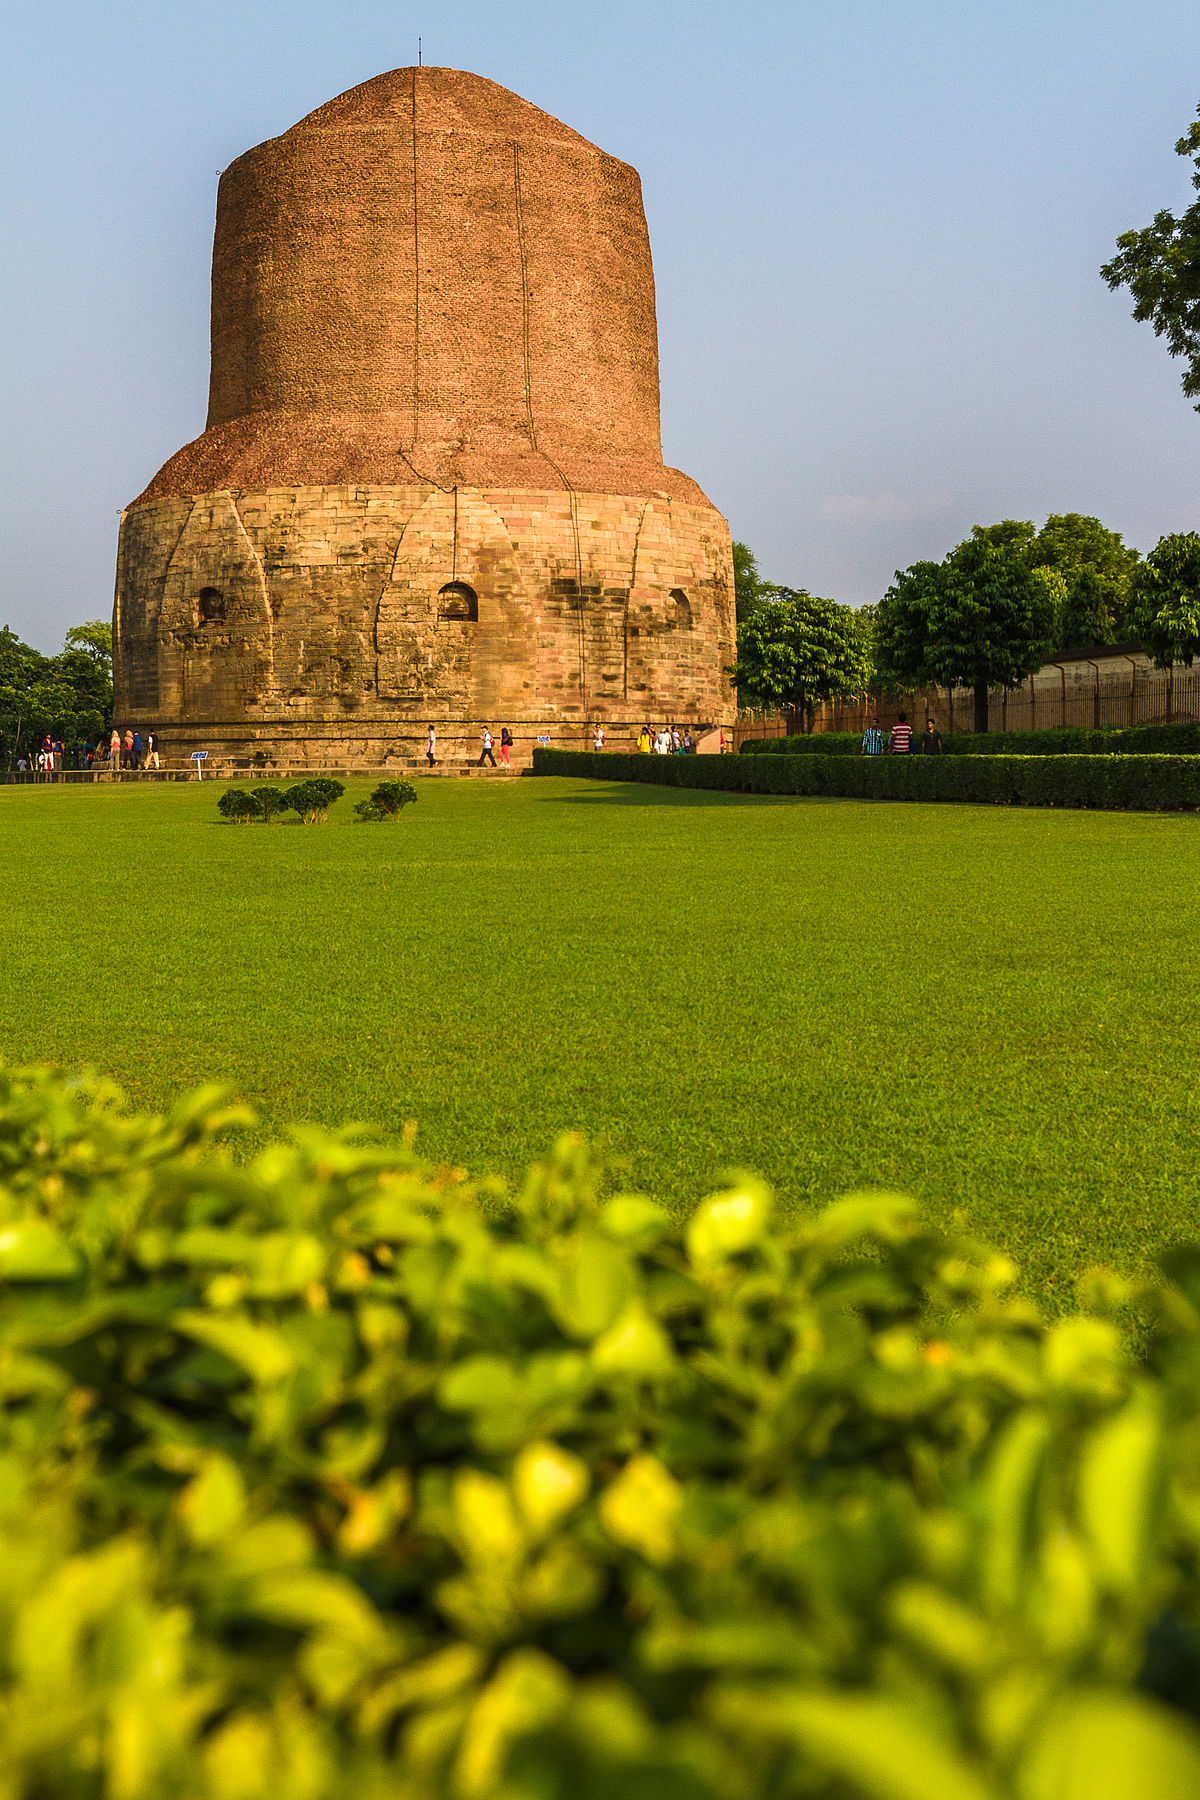 https://upload.wikimedia.org/wikipedia/commons/thumb/0/02/Dhamek_Stupa%2C_Sarnath.jpg/1200px-Dhamek_Stupa%2C_Sarnath.jpg